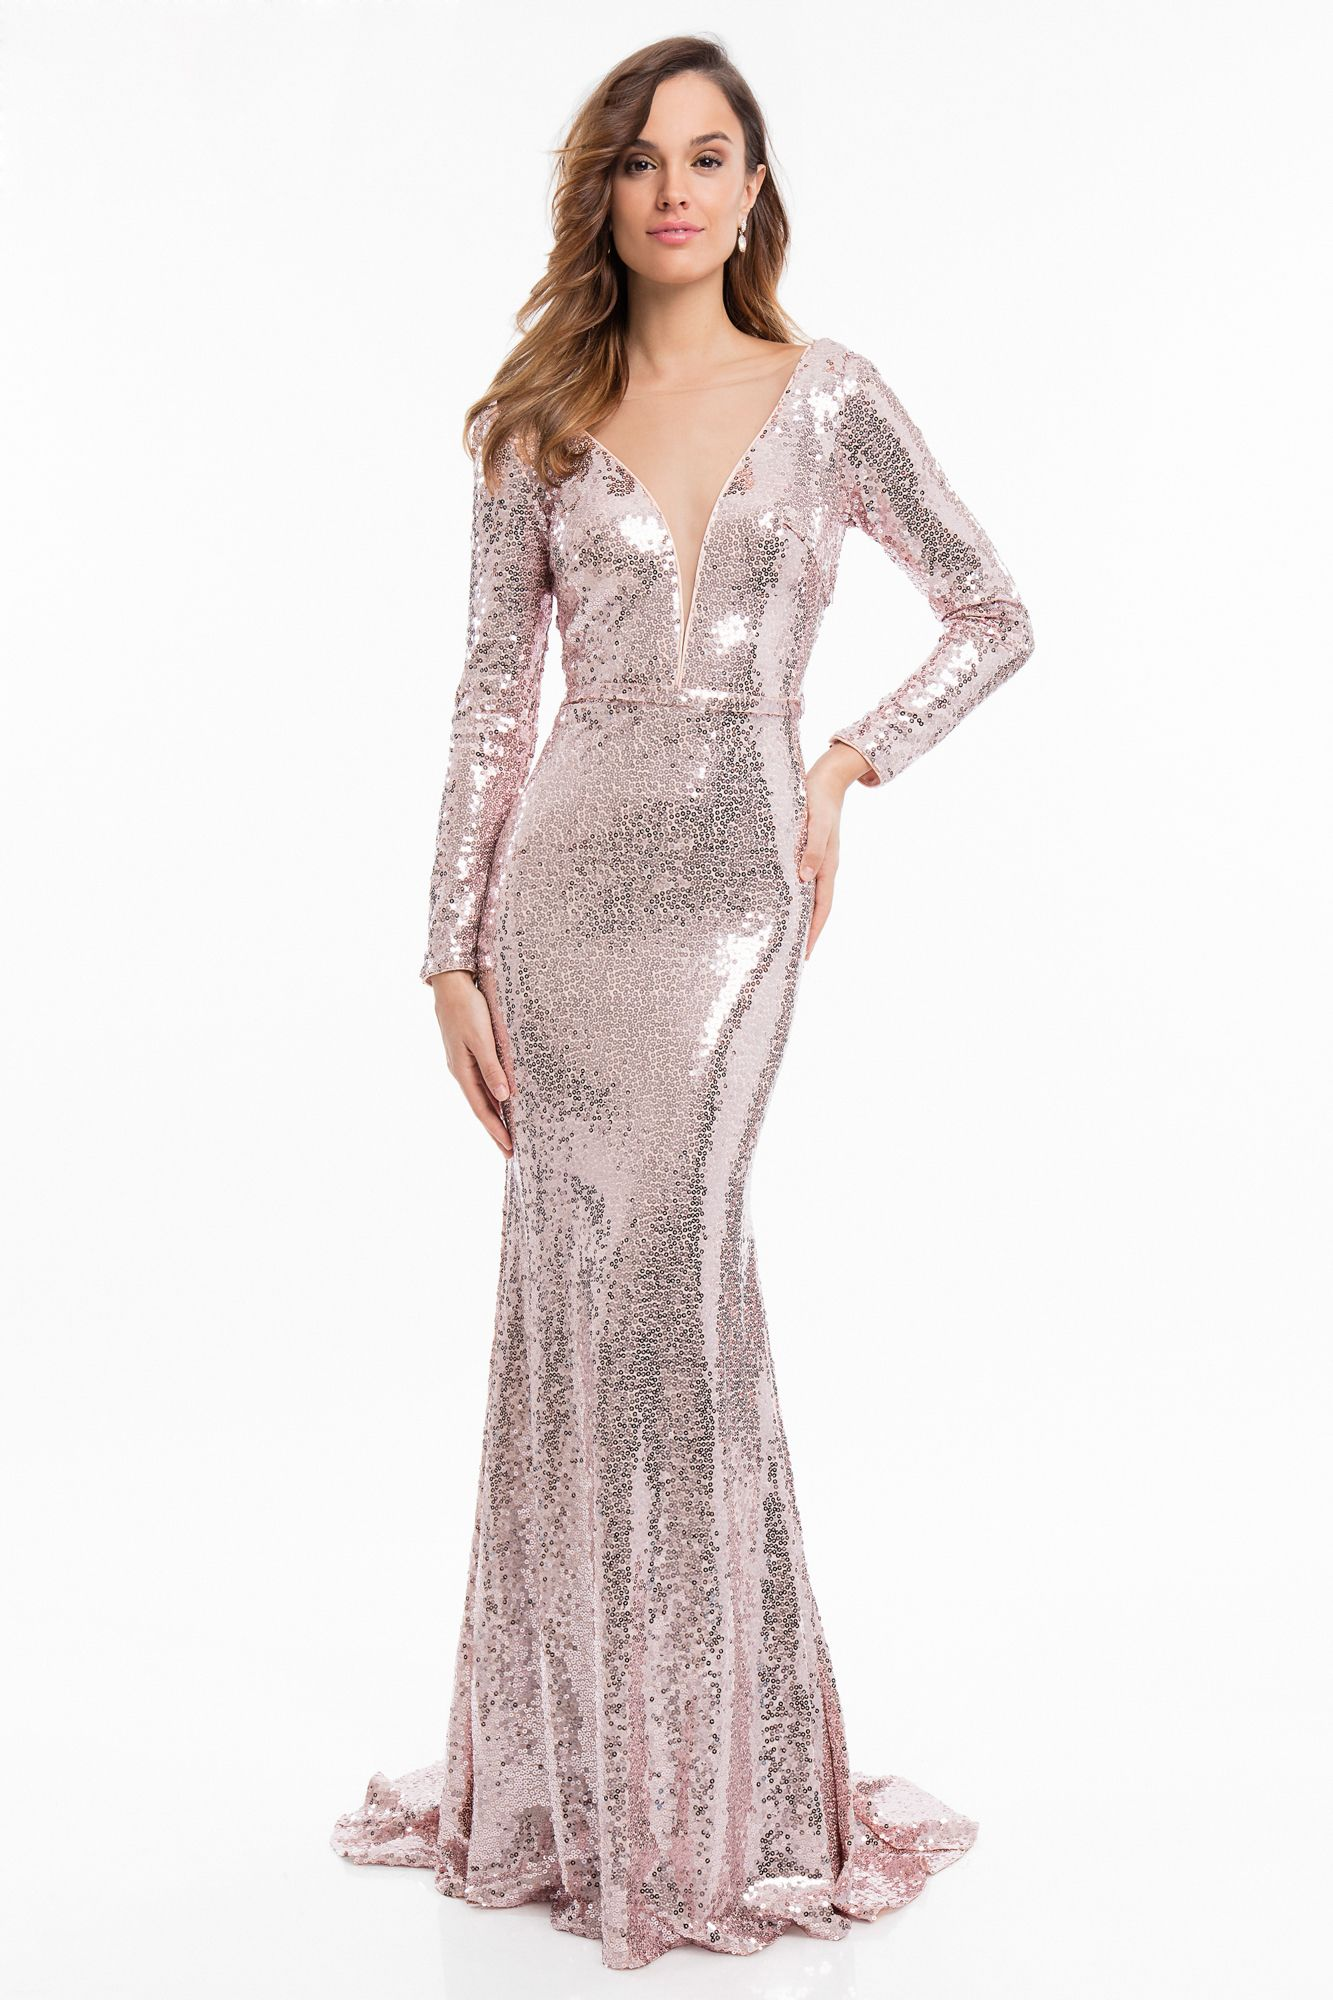 287f1496d03 Sparkle up your evening in the Long Sleeve Cowl Back Fully Sequined Evening  Dress by Terani Couture.